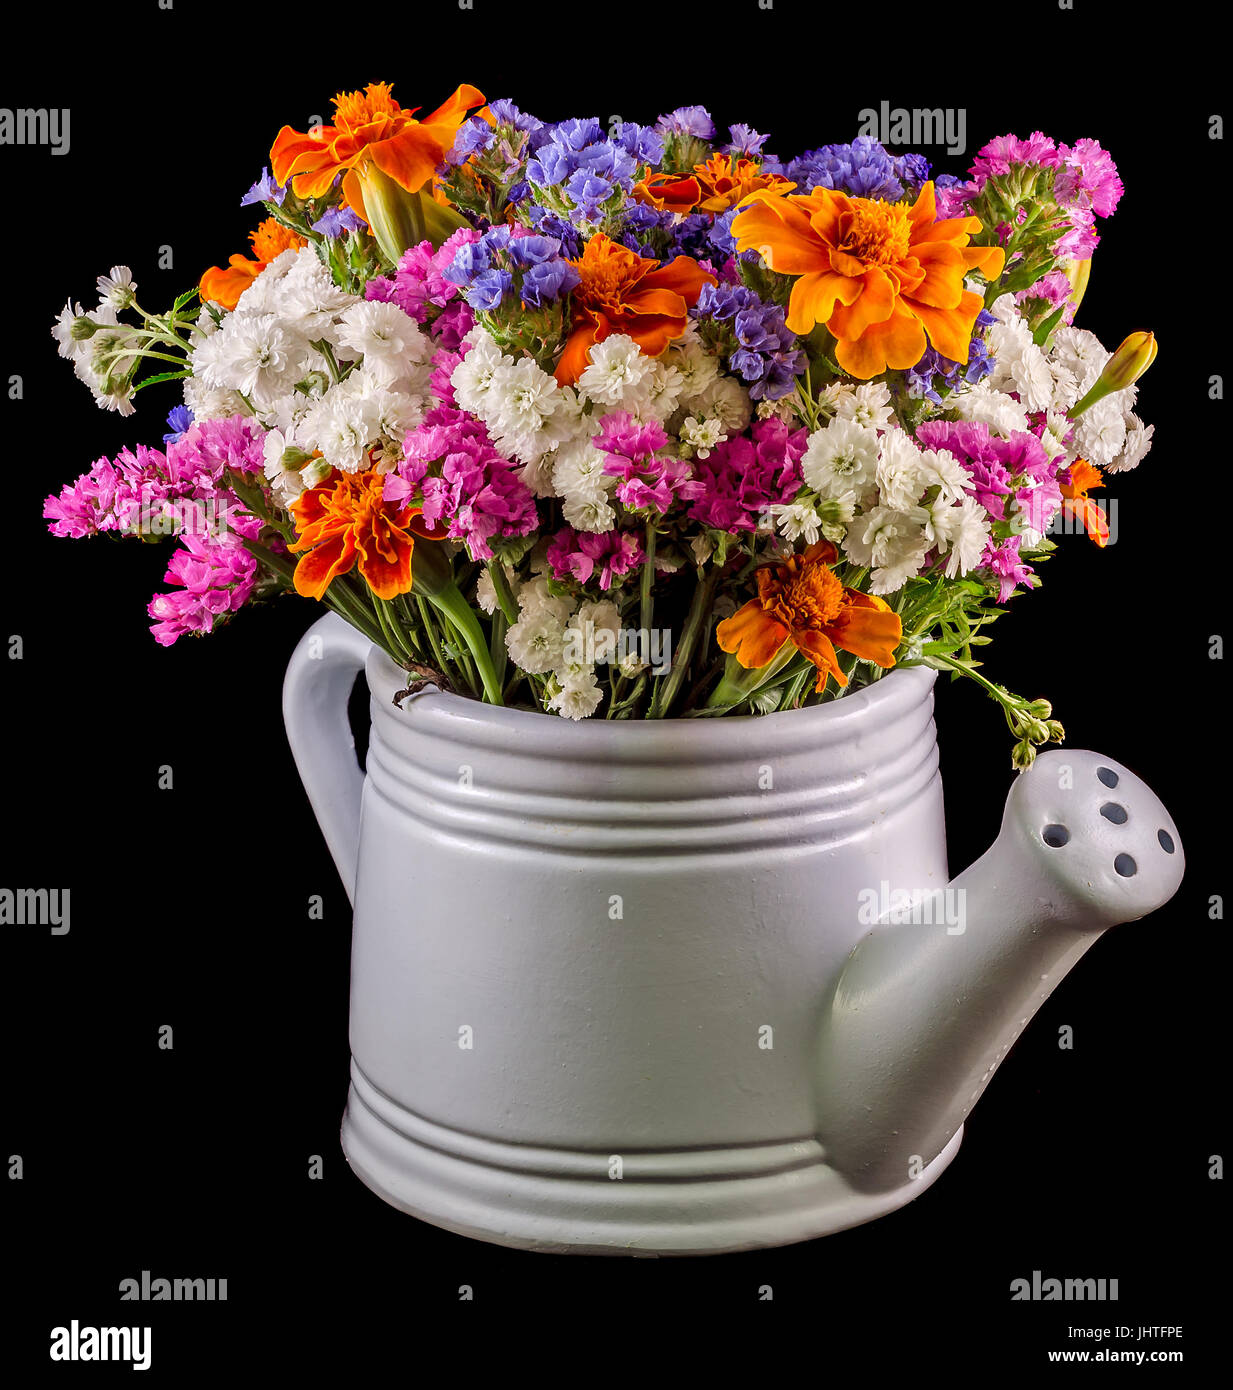 White Ceramic Watercan Sprinkler With Vivid Colored Flowers